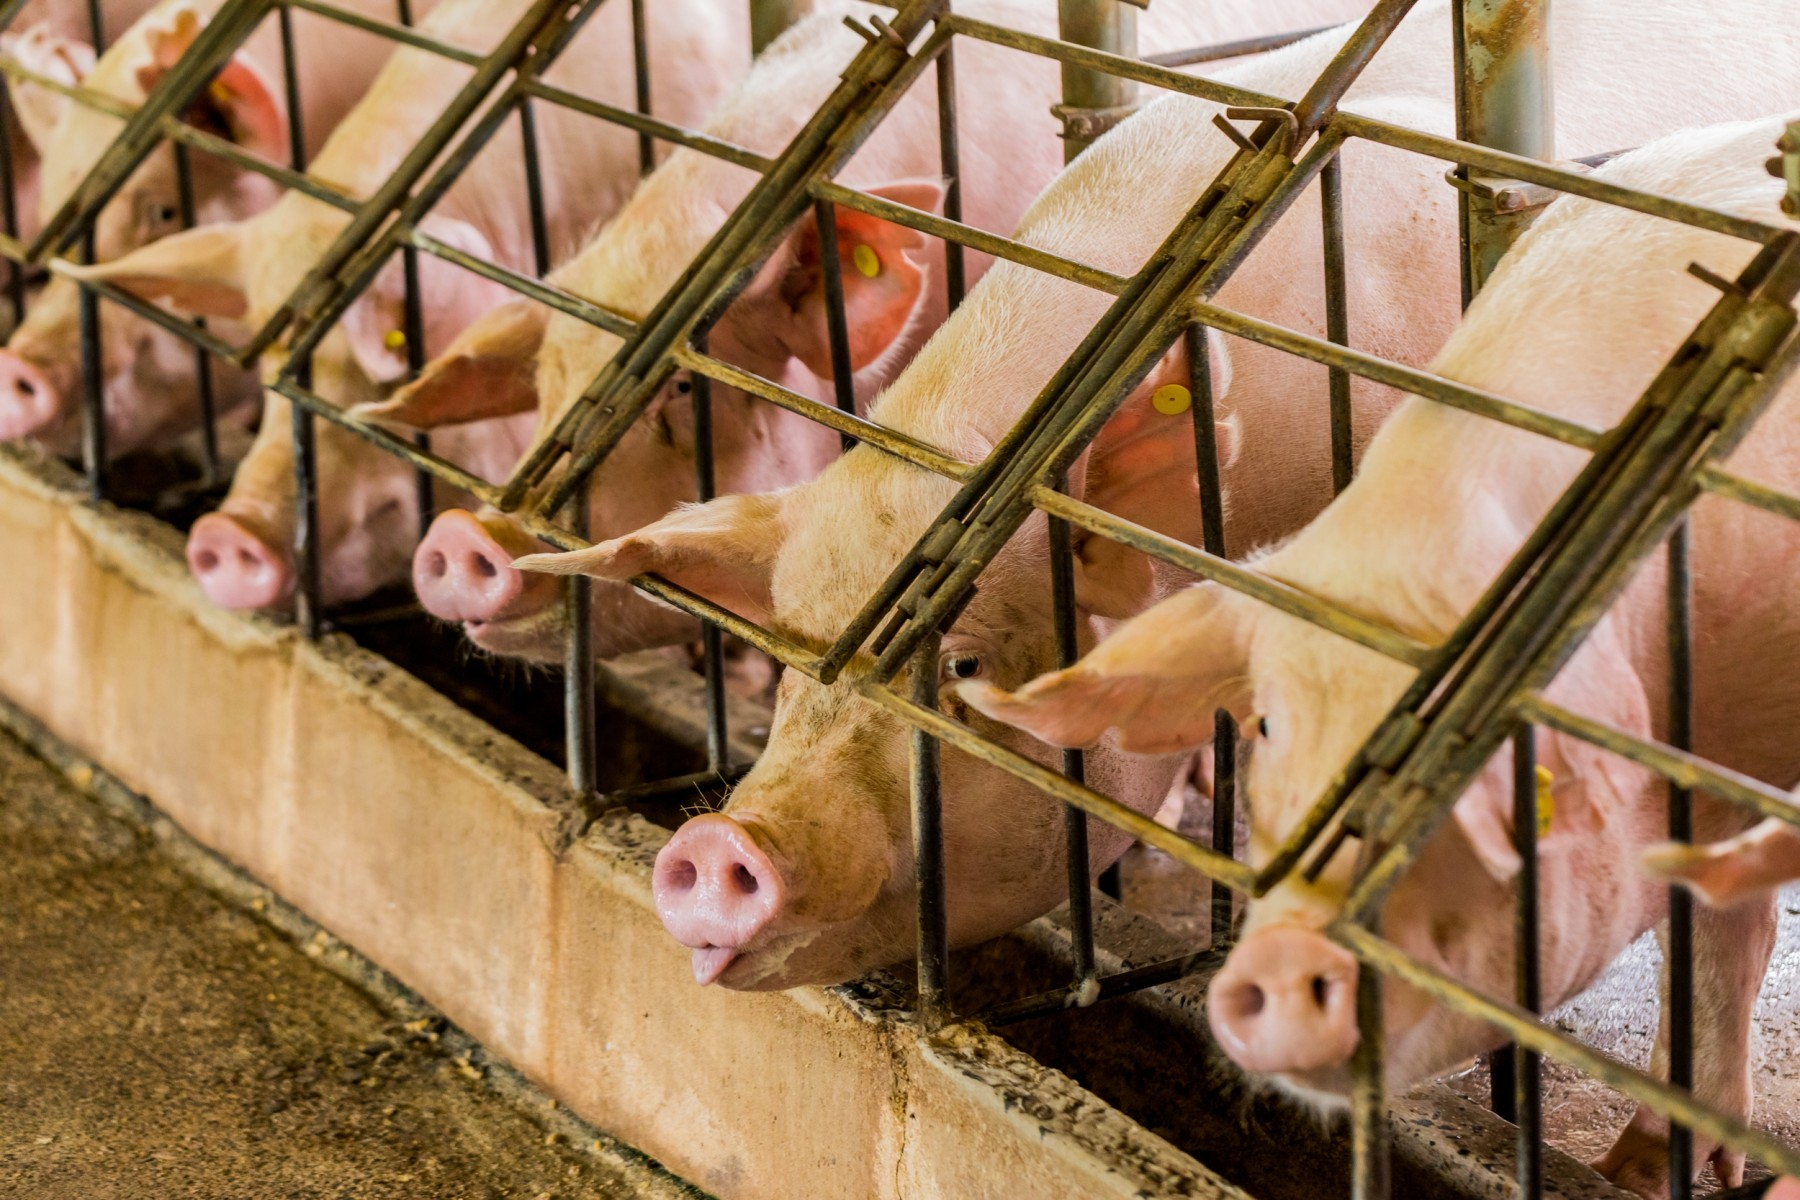 Pigs in a row of cages - World Animal Protection - Animals in farming